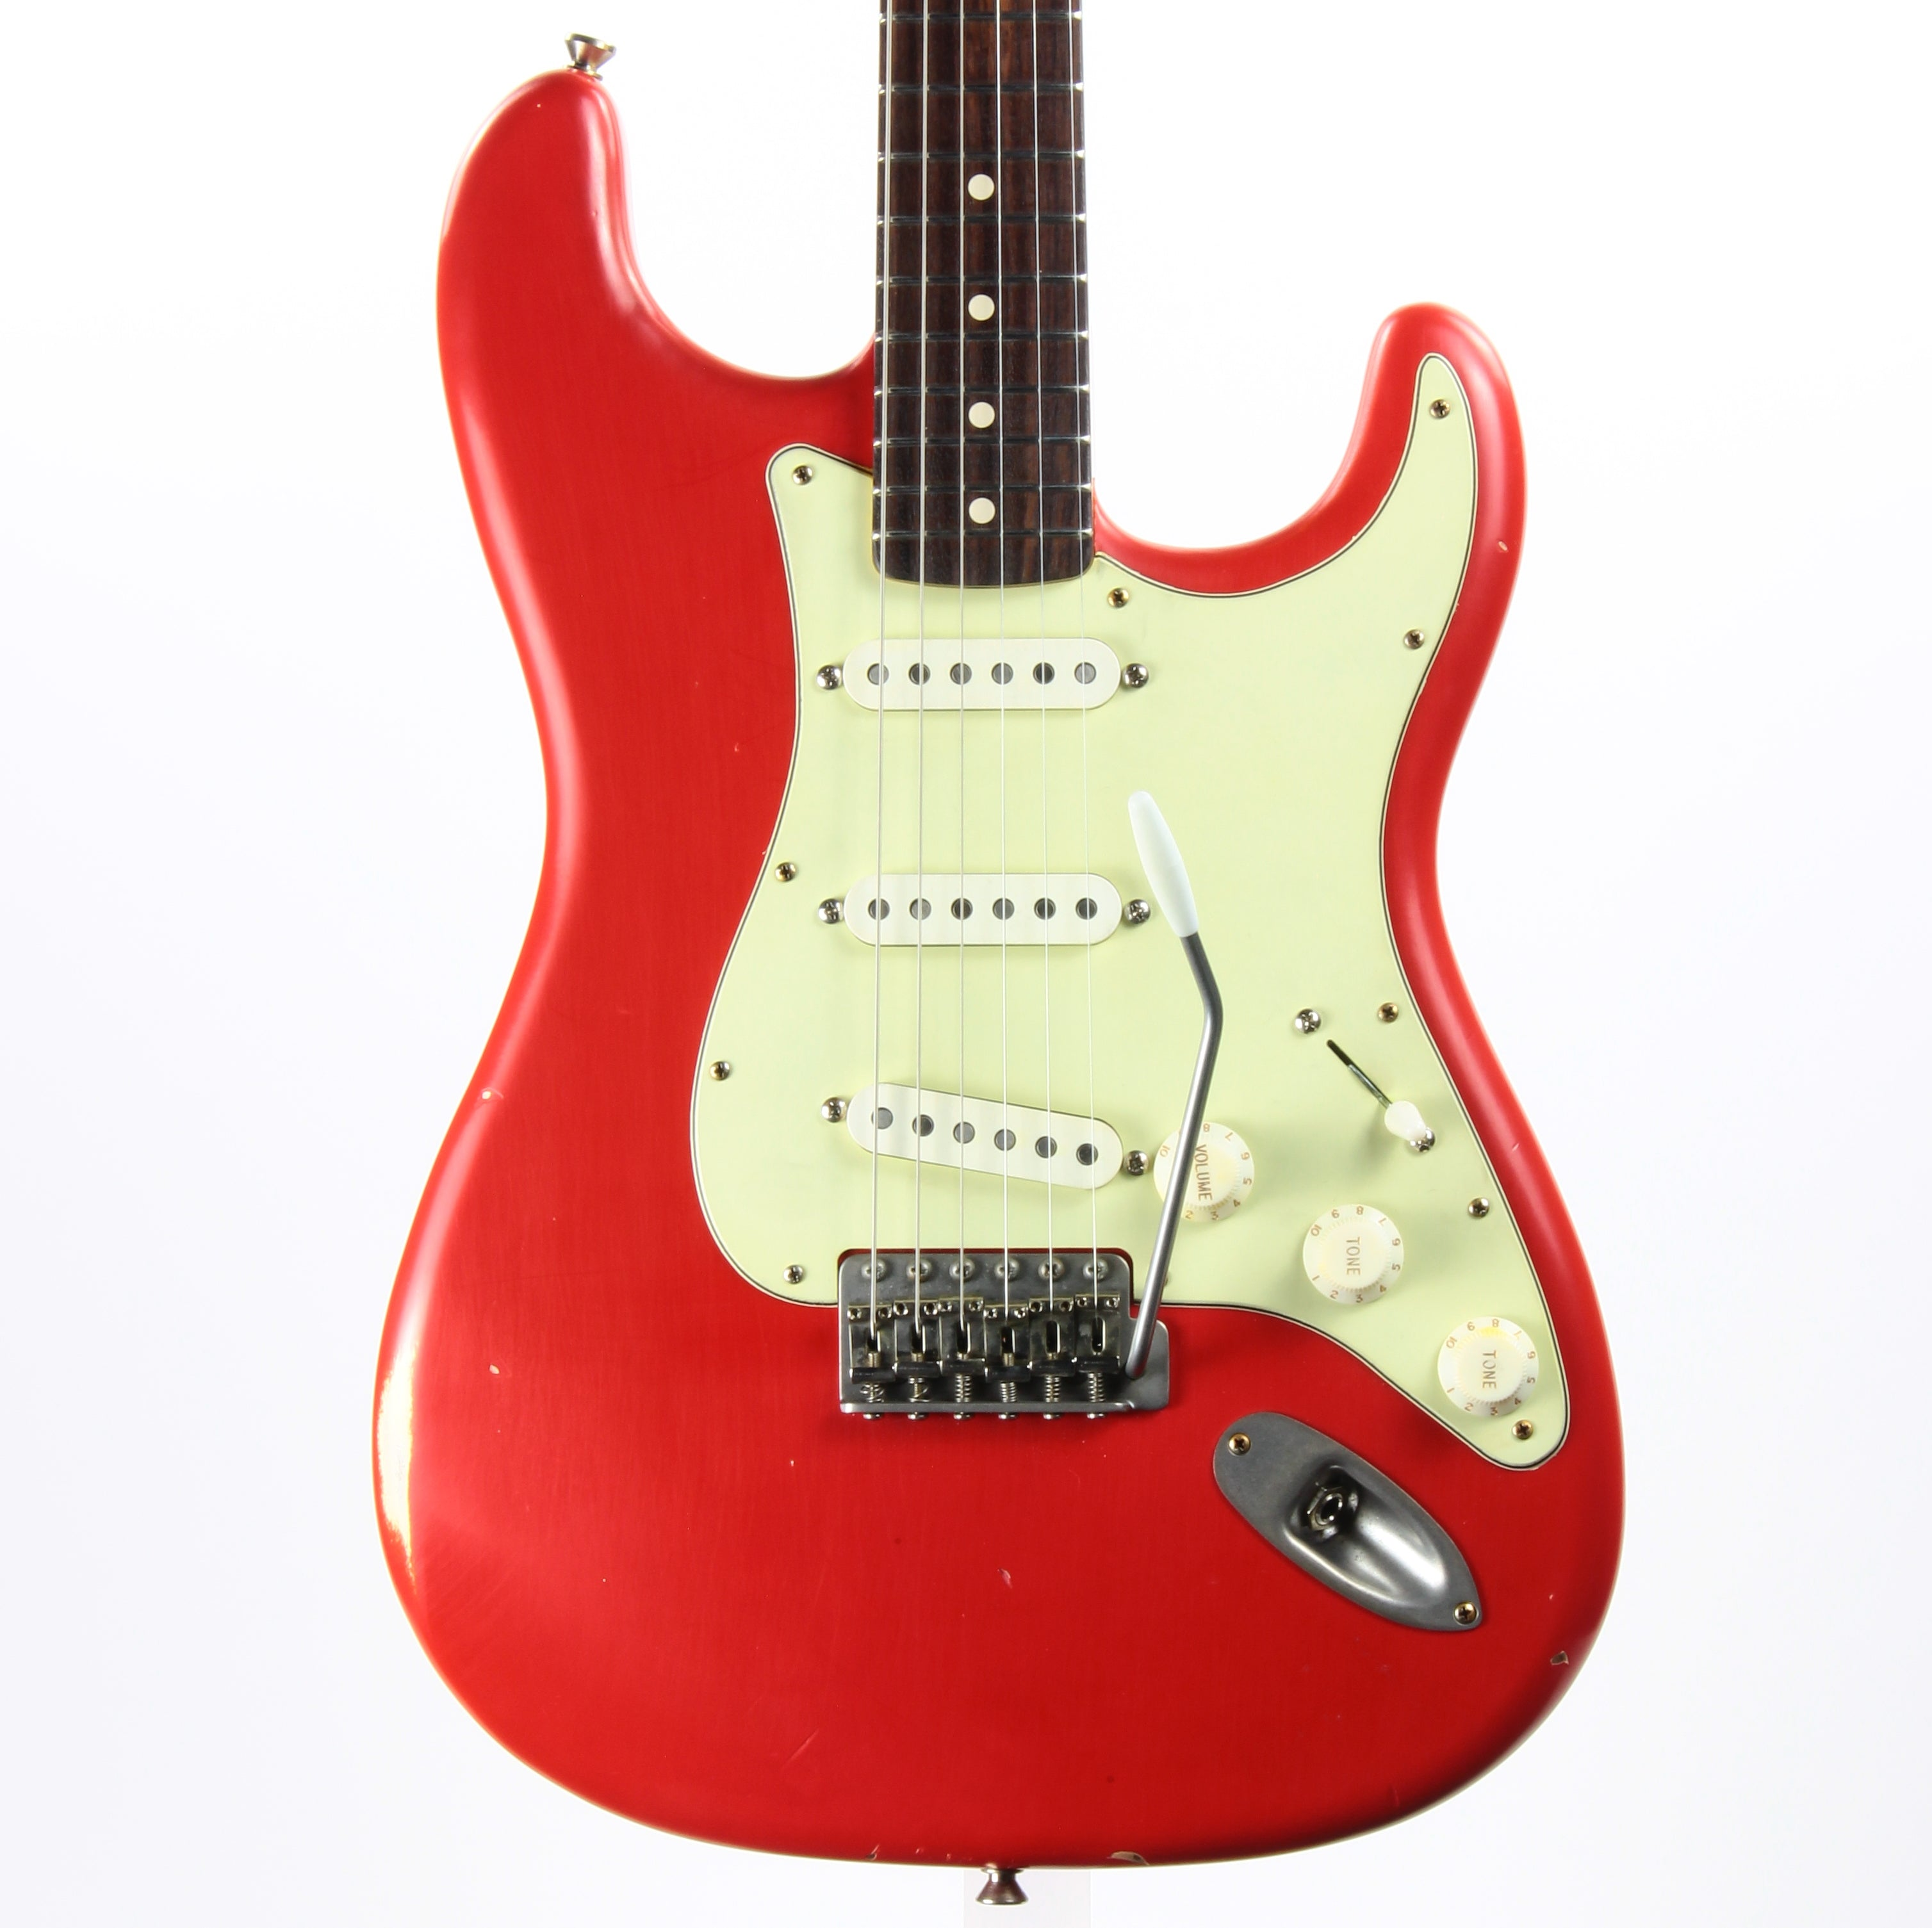 2020 Nash S-63 Fiesta Red Strat - Rosewood Fingerboard, Mint Green guard